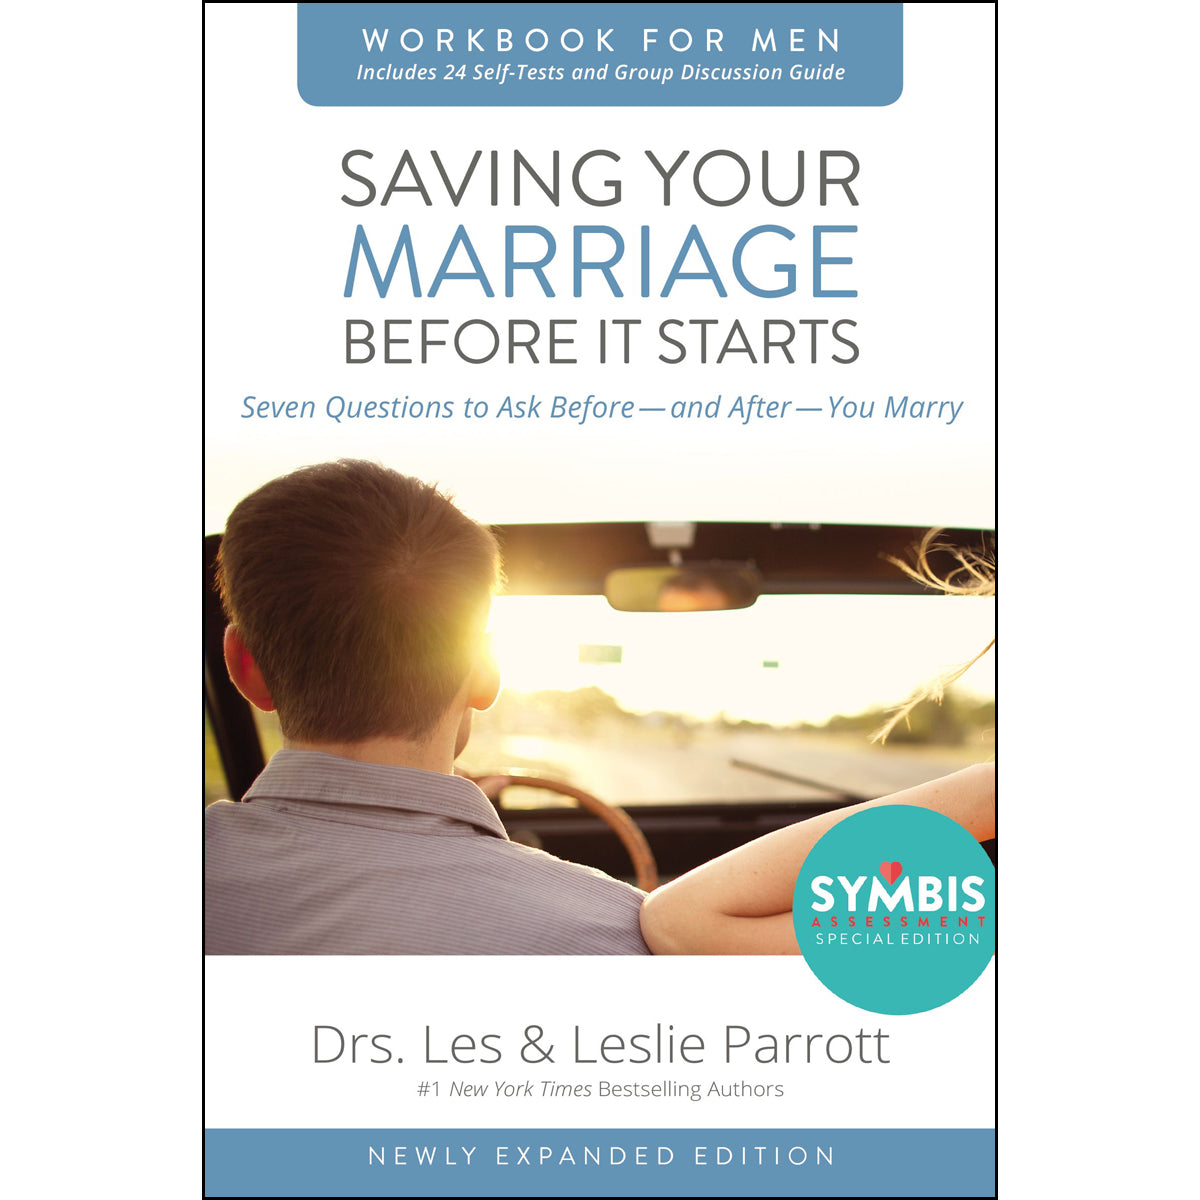 Saving Your Marriage Before It Starts Workbook For Men (Paperback)